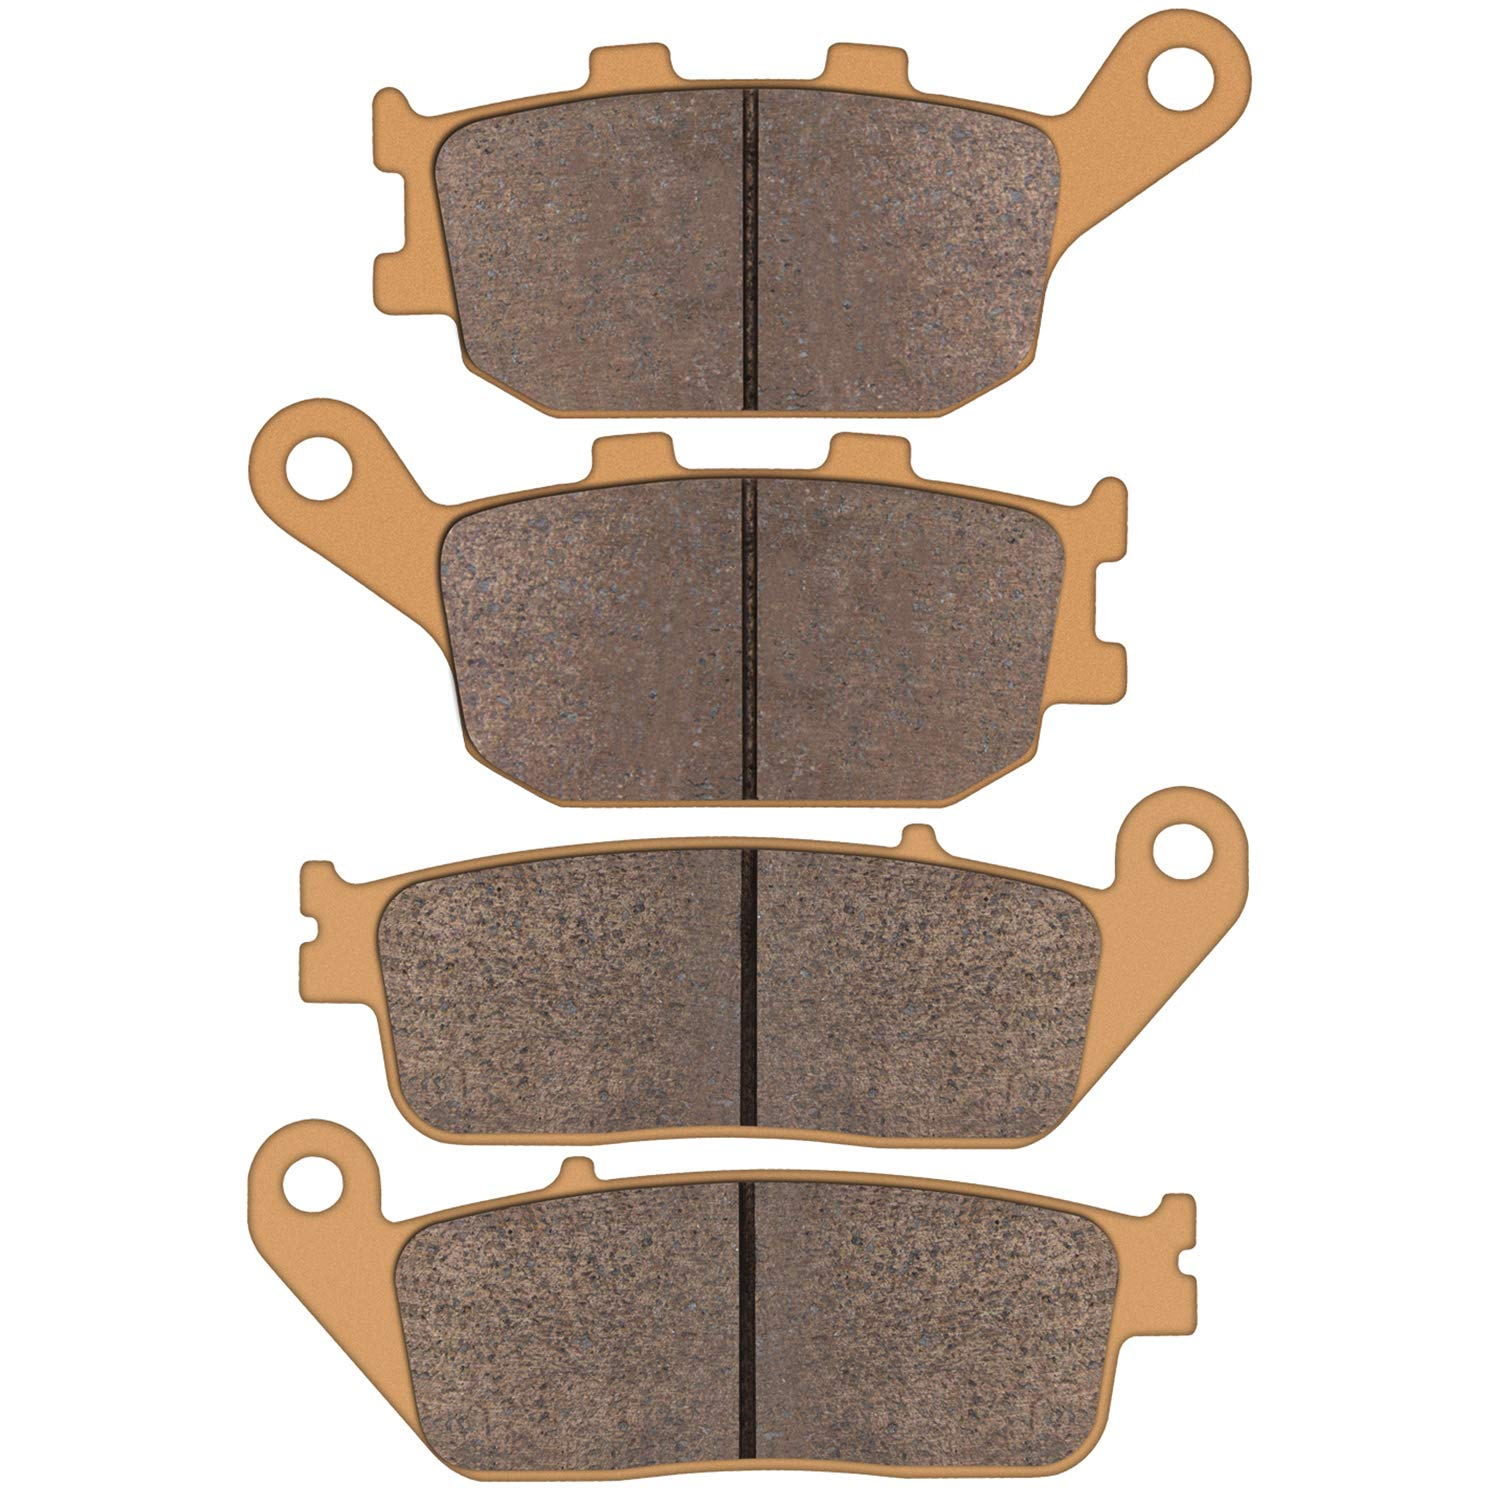 Zinger Brake Pads for Honda VT 1100 1300 VTX 1300 1995 1996 1997 1998 1999 2000 2001 2002 2003 2004 2005 2006 2007 2008 2009 2010 2011, 2 Set Sintered Front and Rear Brake Pads Replacement by Zinger Auto Parts